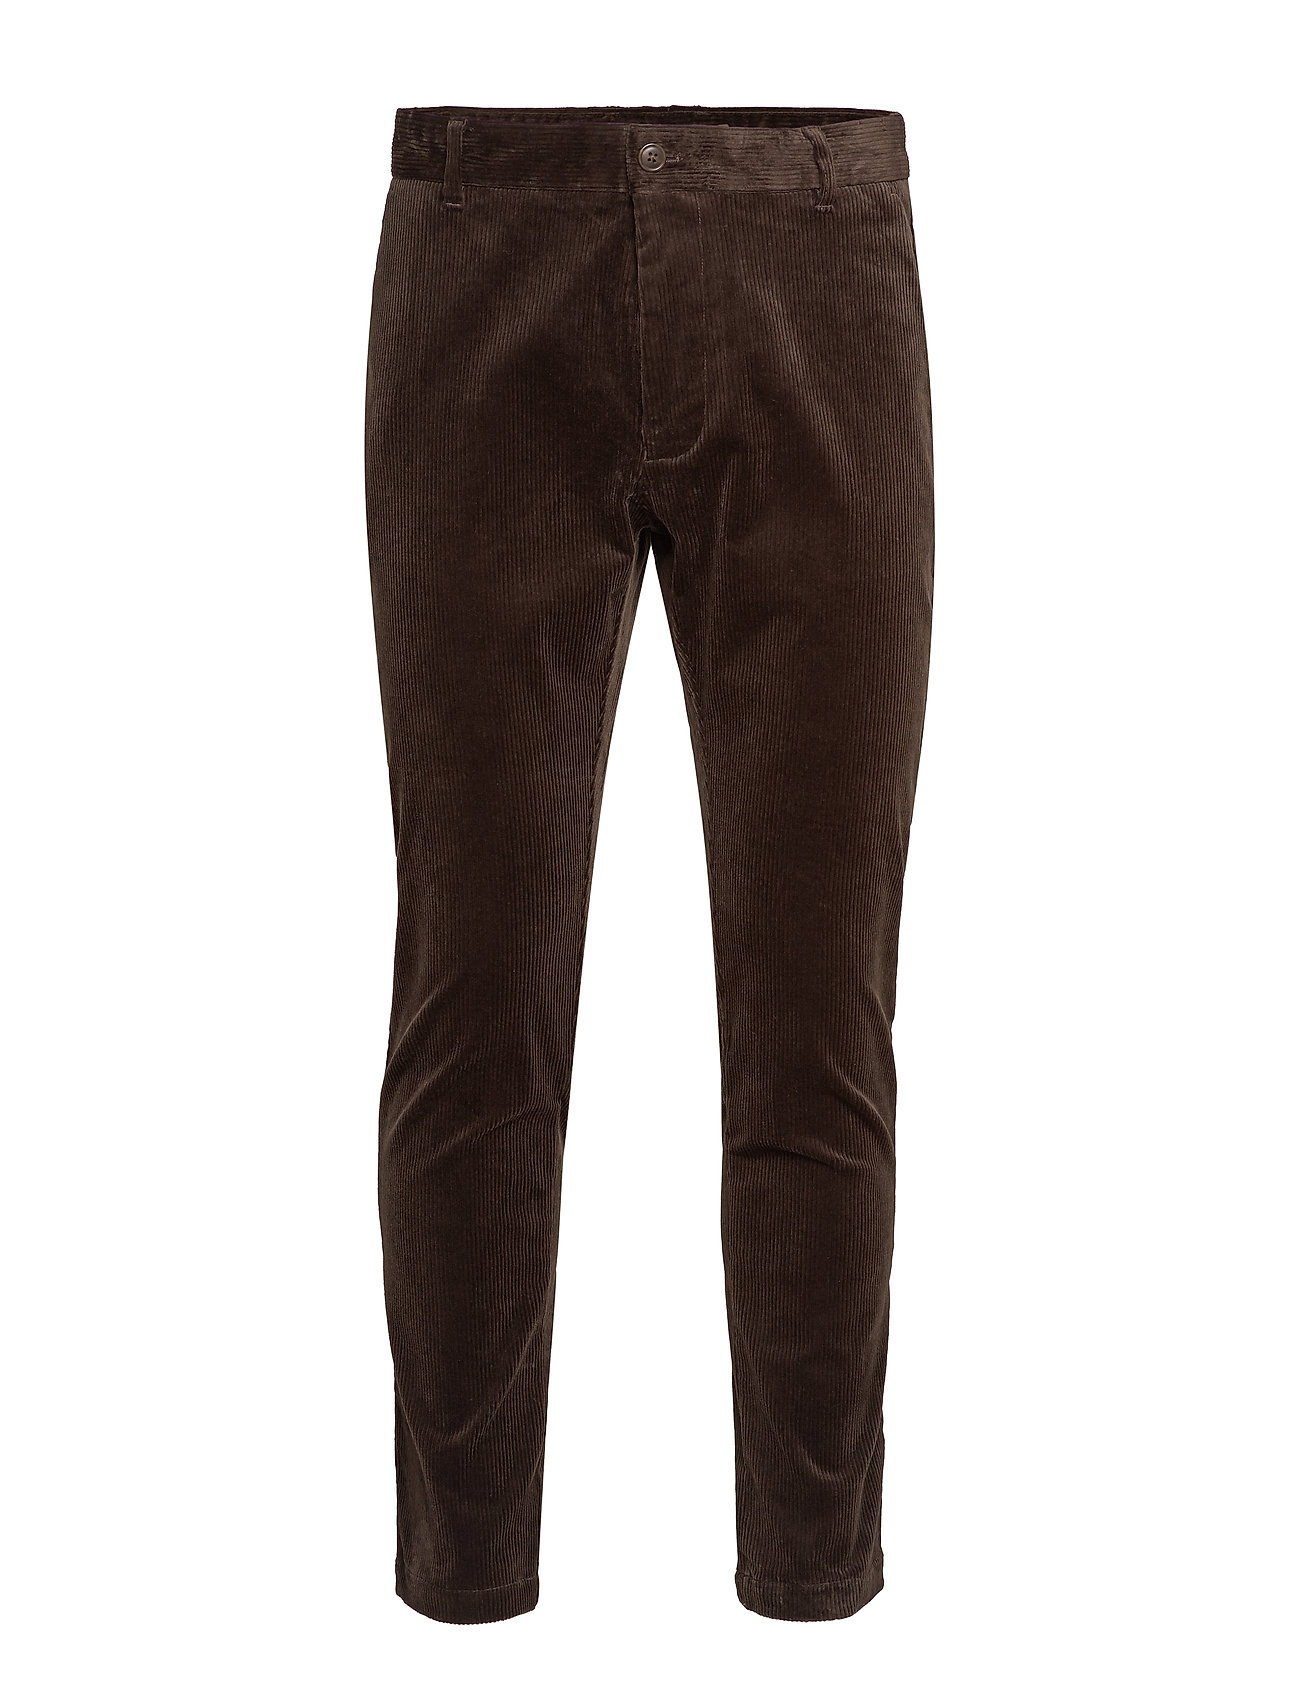 Samsøe & Samsøe Andy x trousers 11046 - CHOCOLATE TORTO